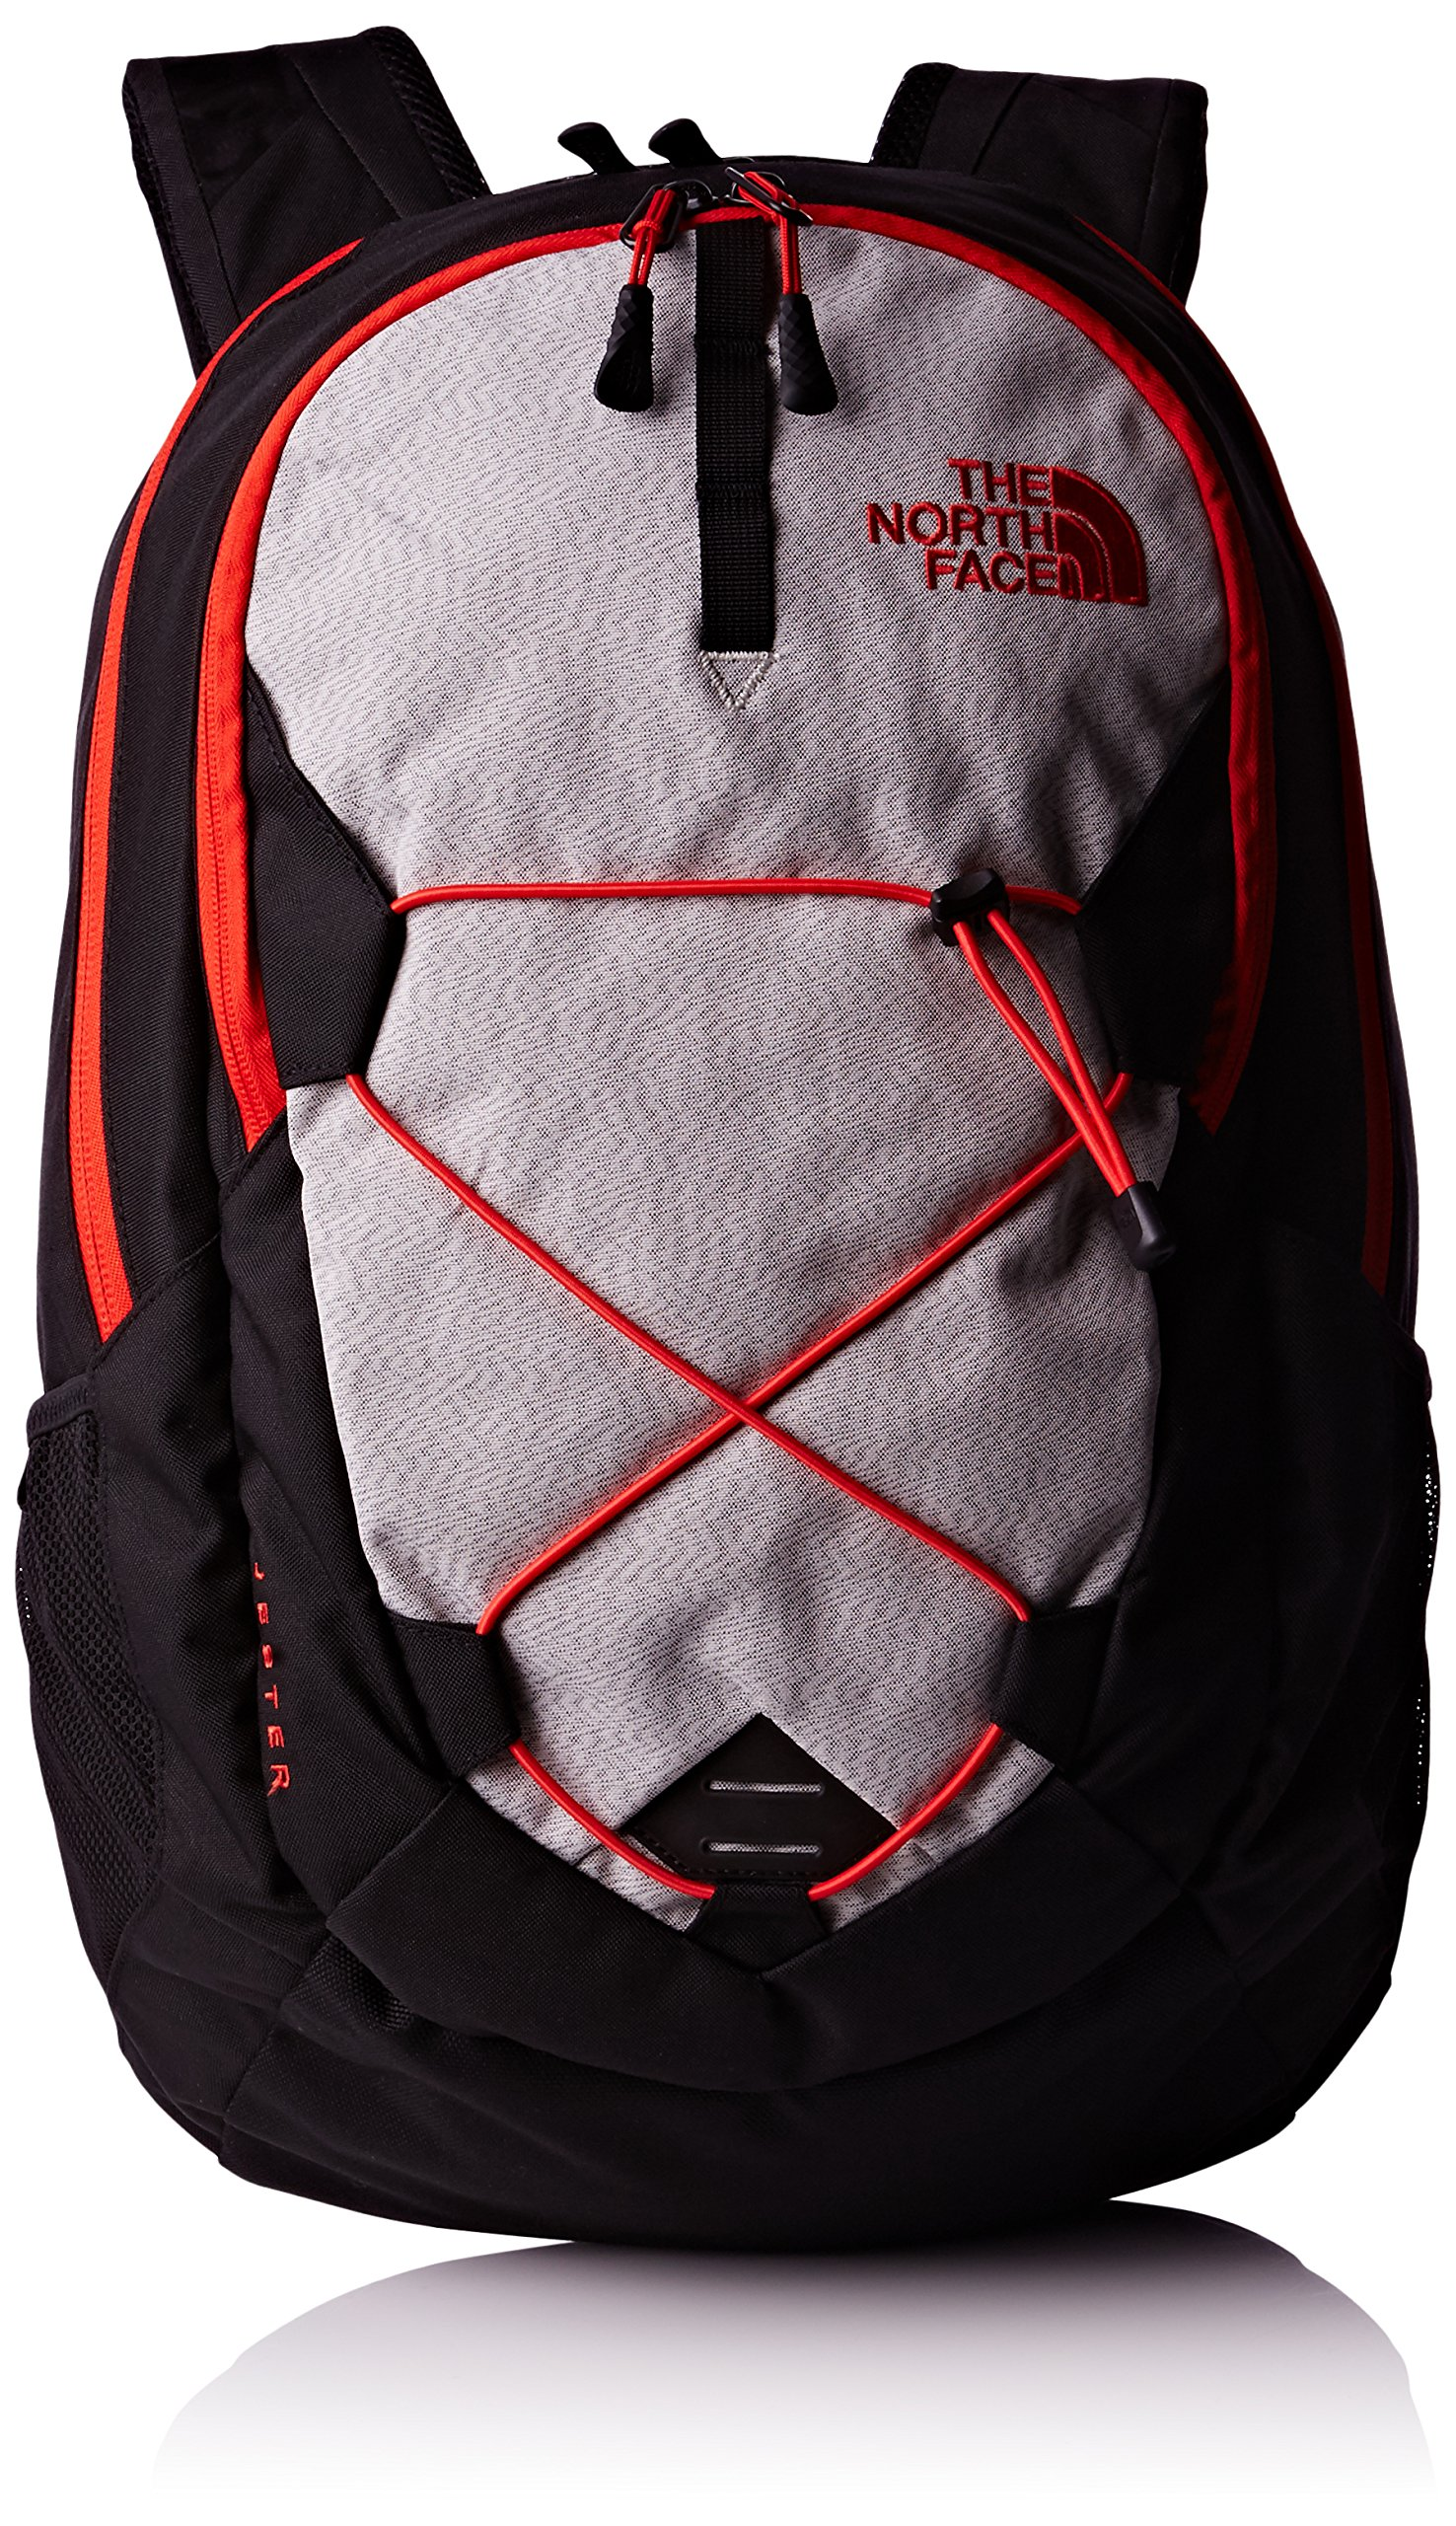 The North Face Jester TNF Black/Fiery Red One Size